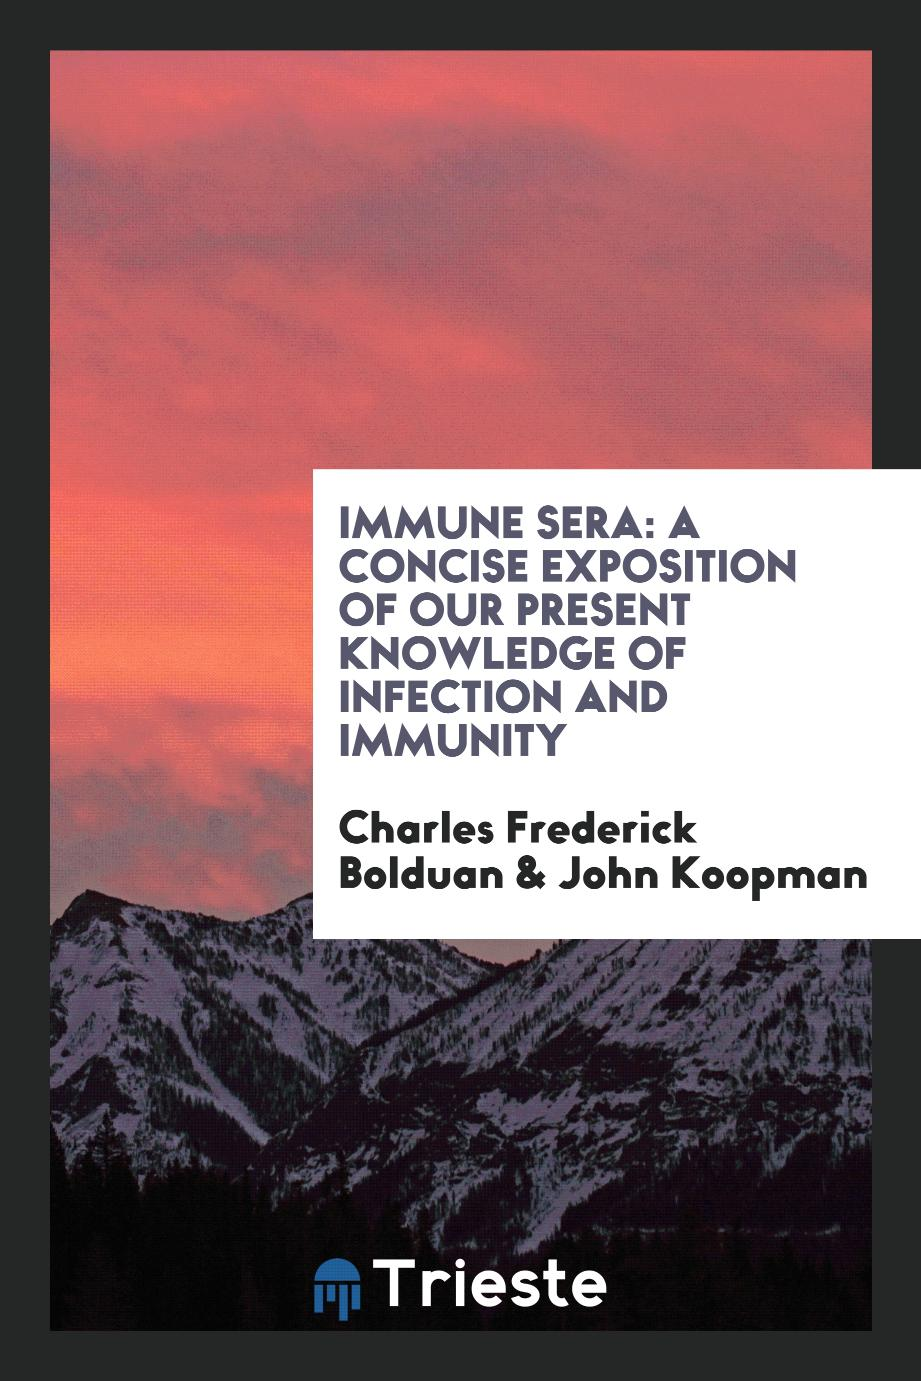 Immune Sera: A Concise Exposition of Our Present Knowledge of Infection and Immunity